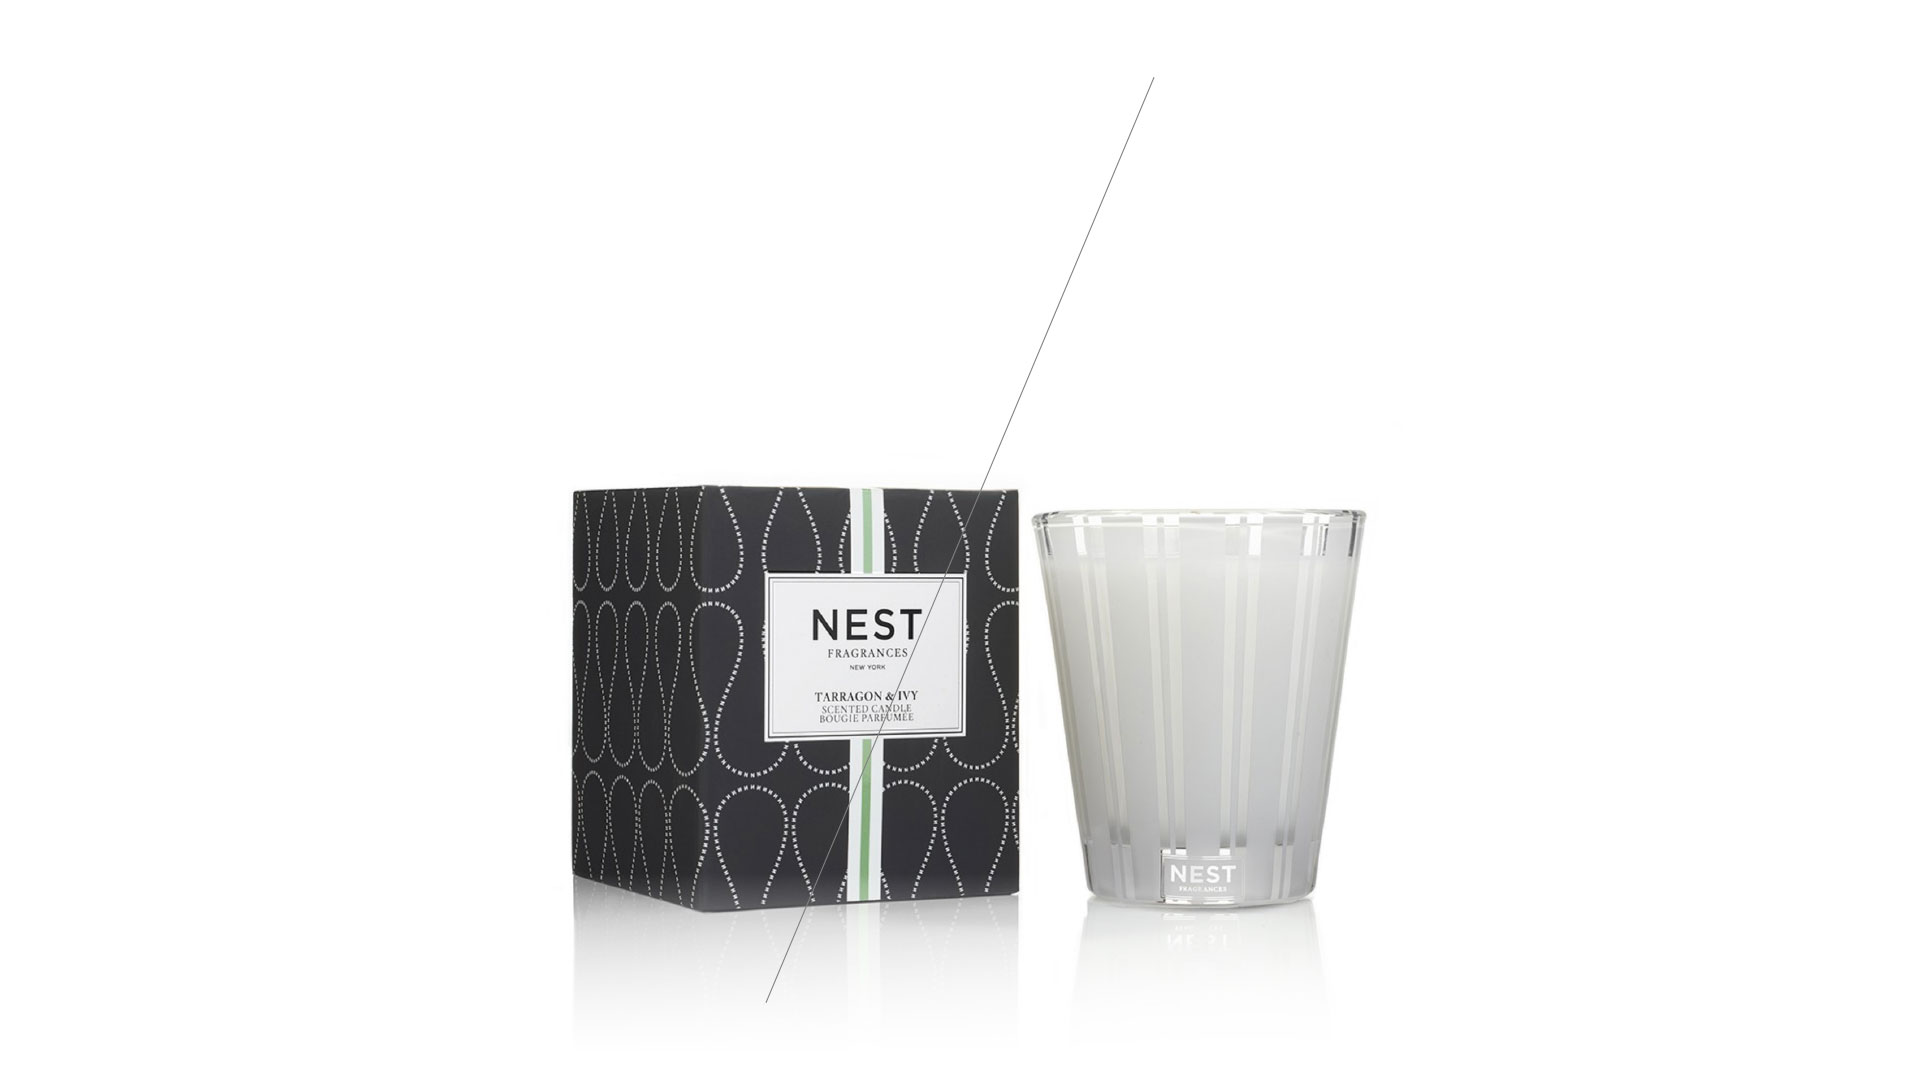 NEST Tarragon & Ivy Classic Candle -